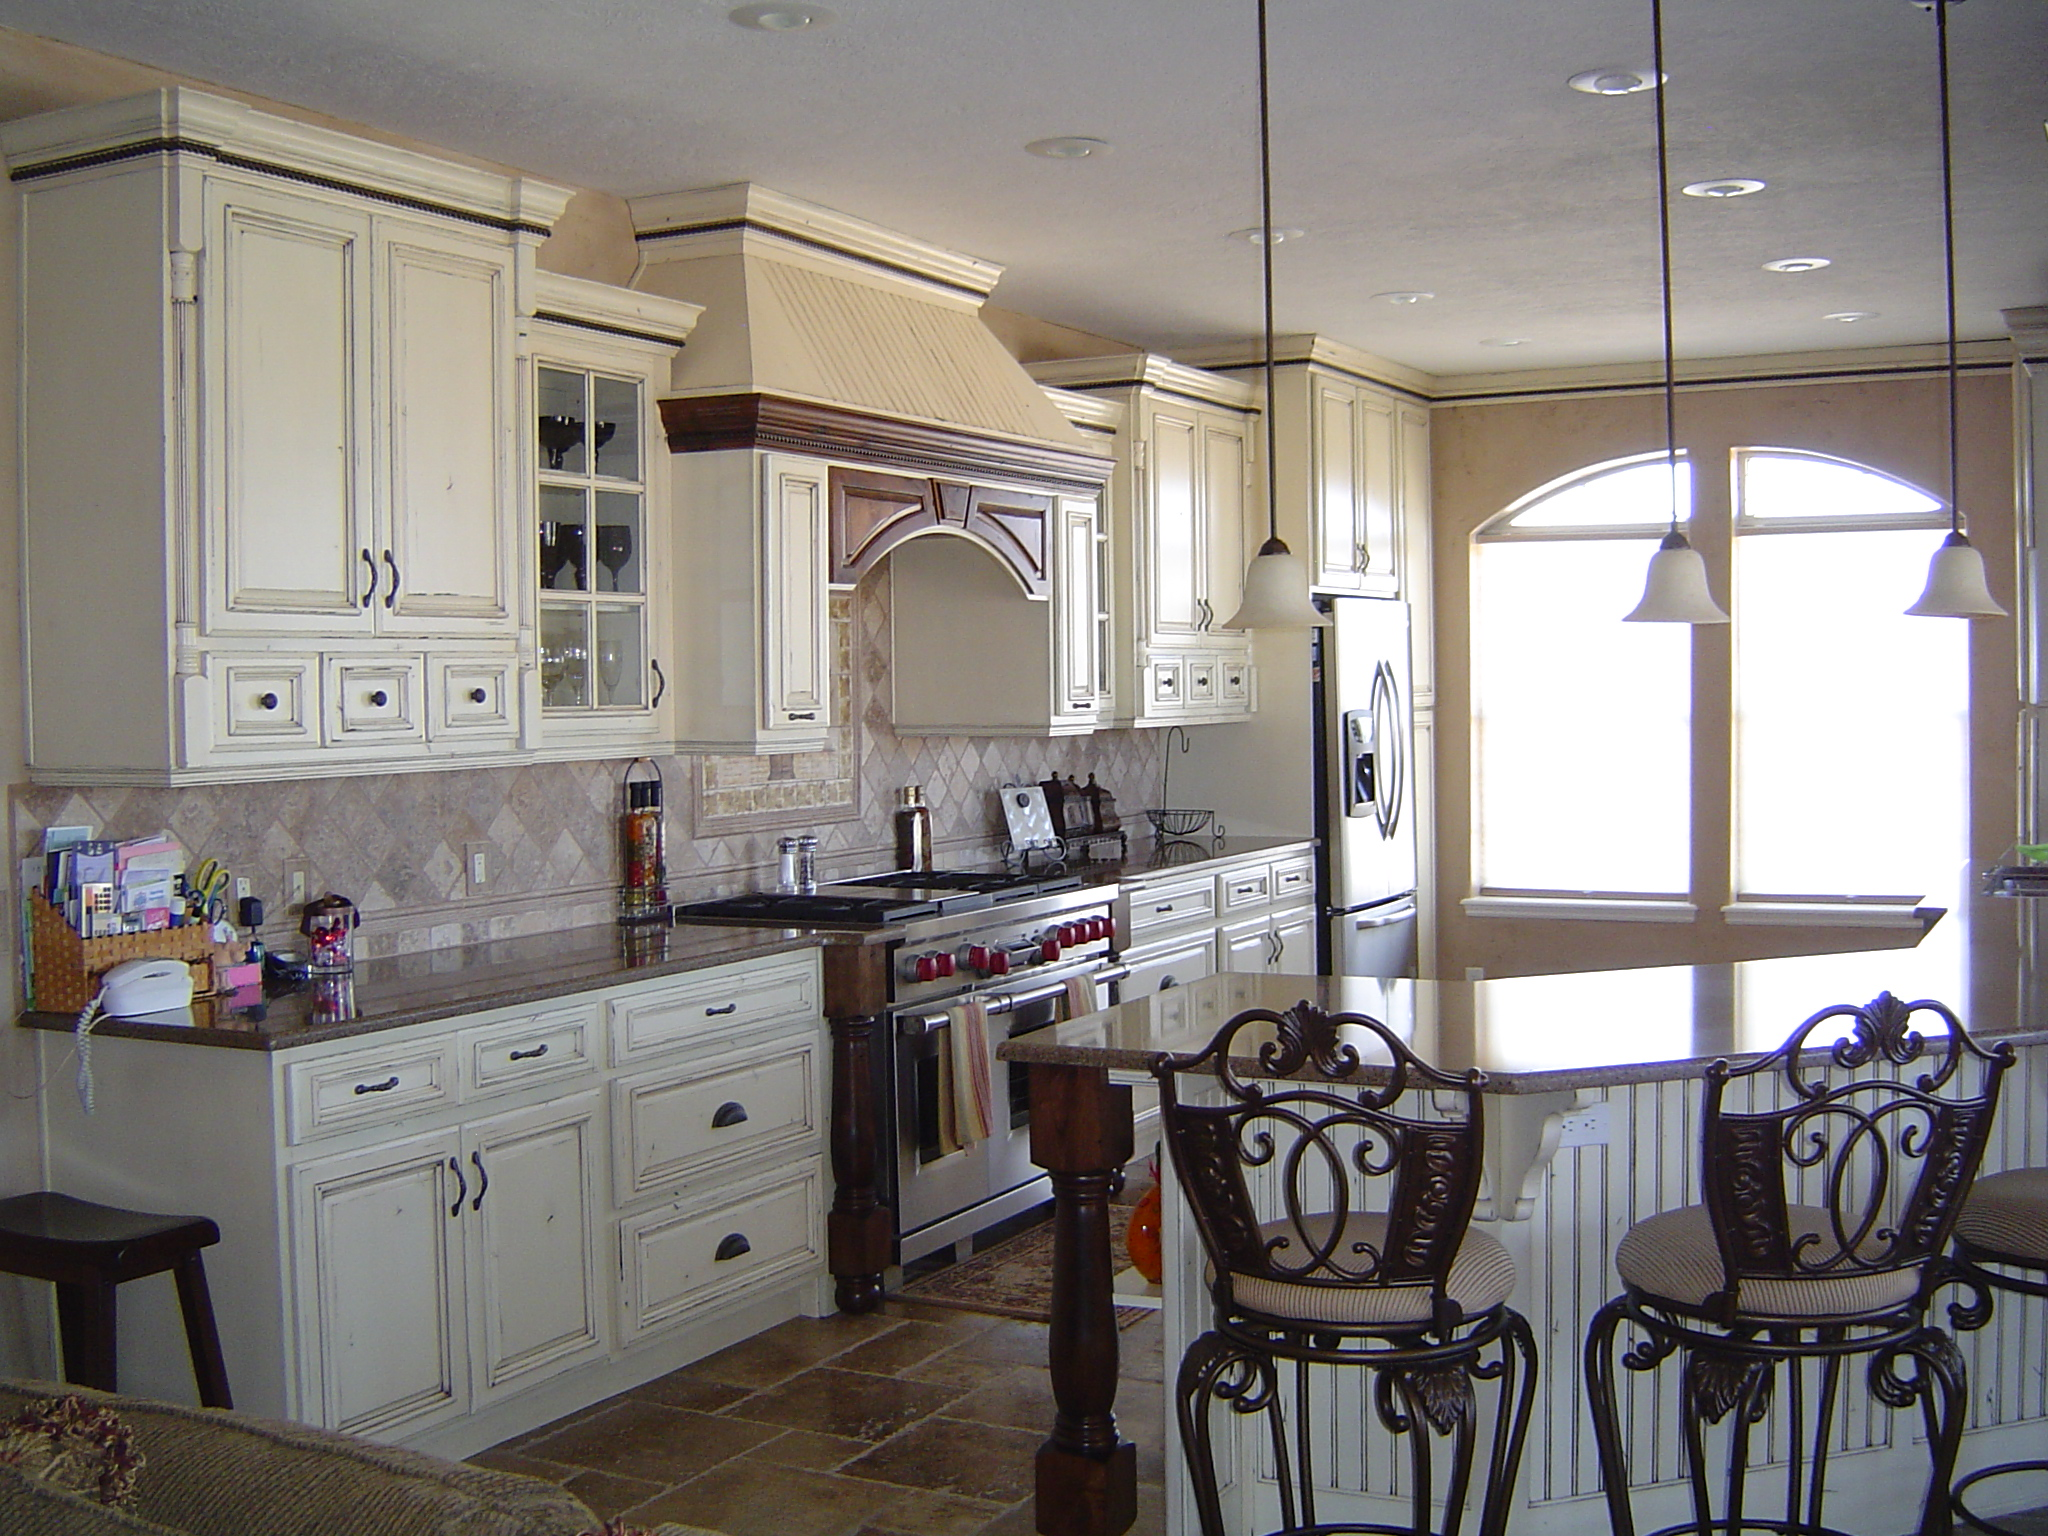 Home H Remodel White Wash French Country Cabinetry